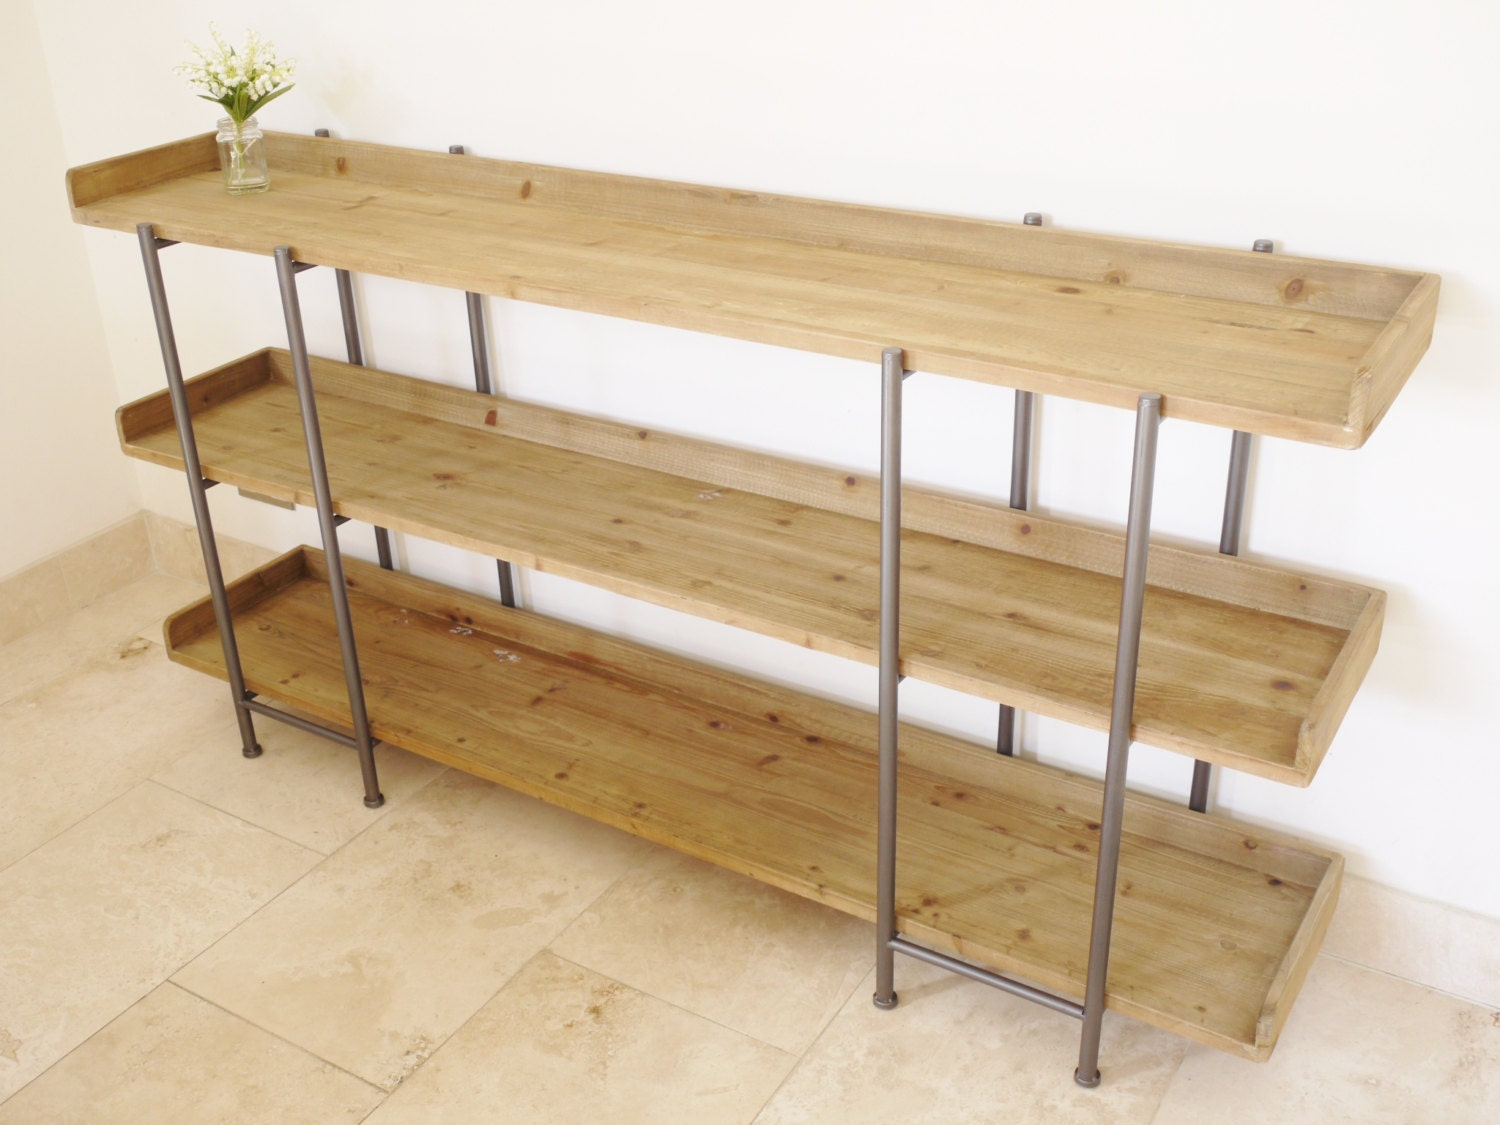 #4F5717 Solid Wood And Metal Large Industrial Shelving Unit. with 1500x1125 px of Most Effective Solid Wood Shelving Units 11251500 wallpaper @ avoidforclosure.info